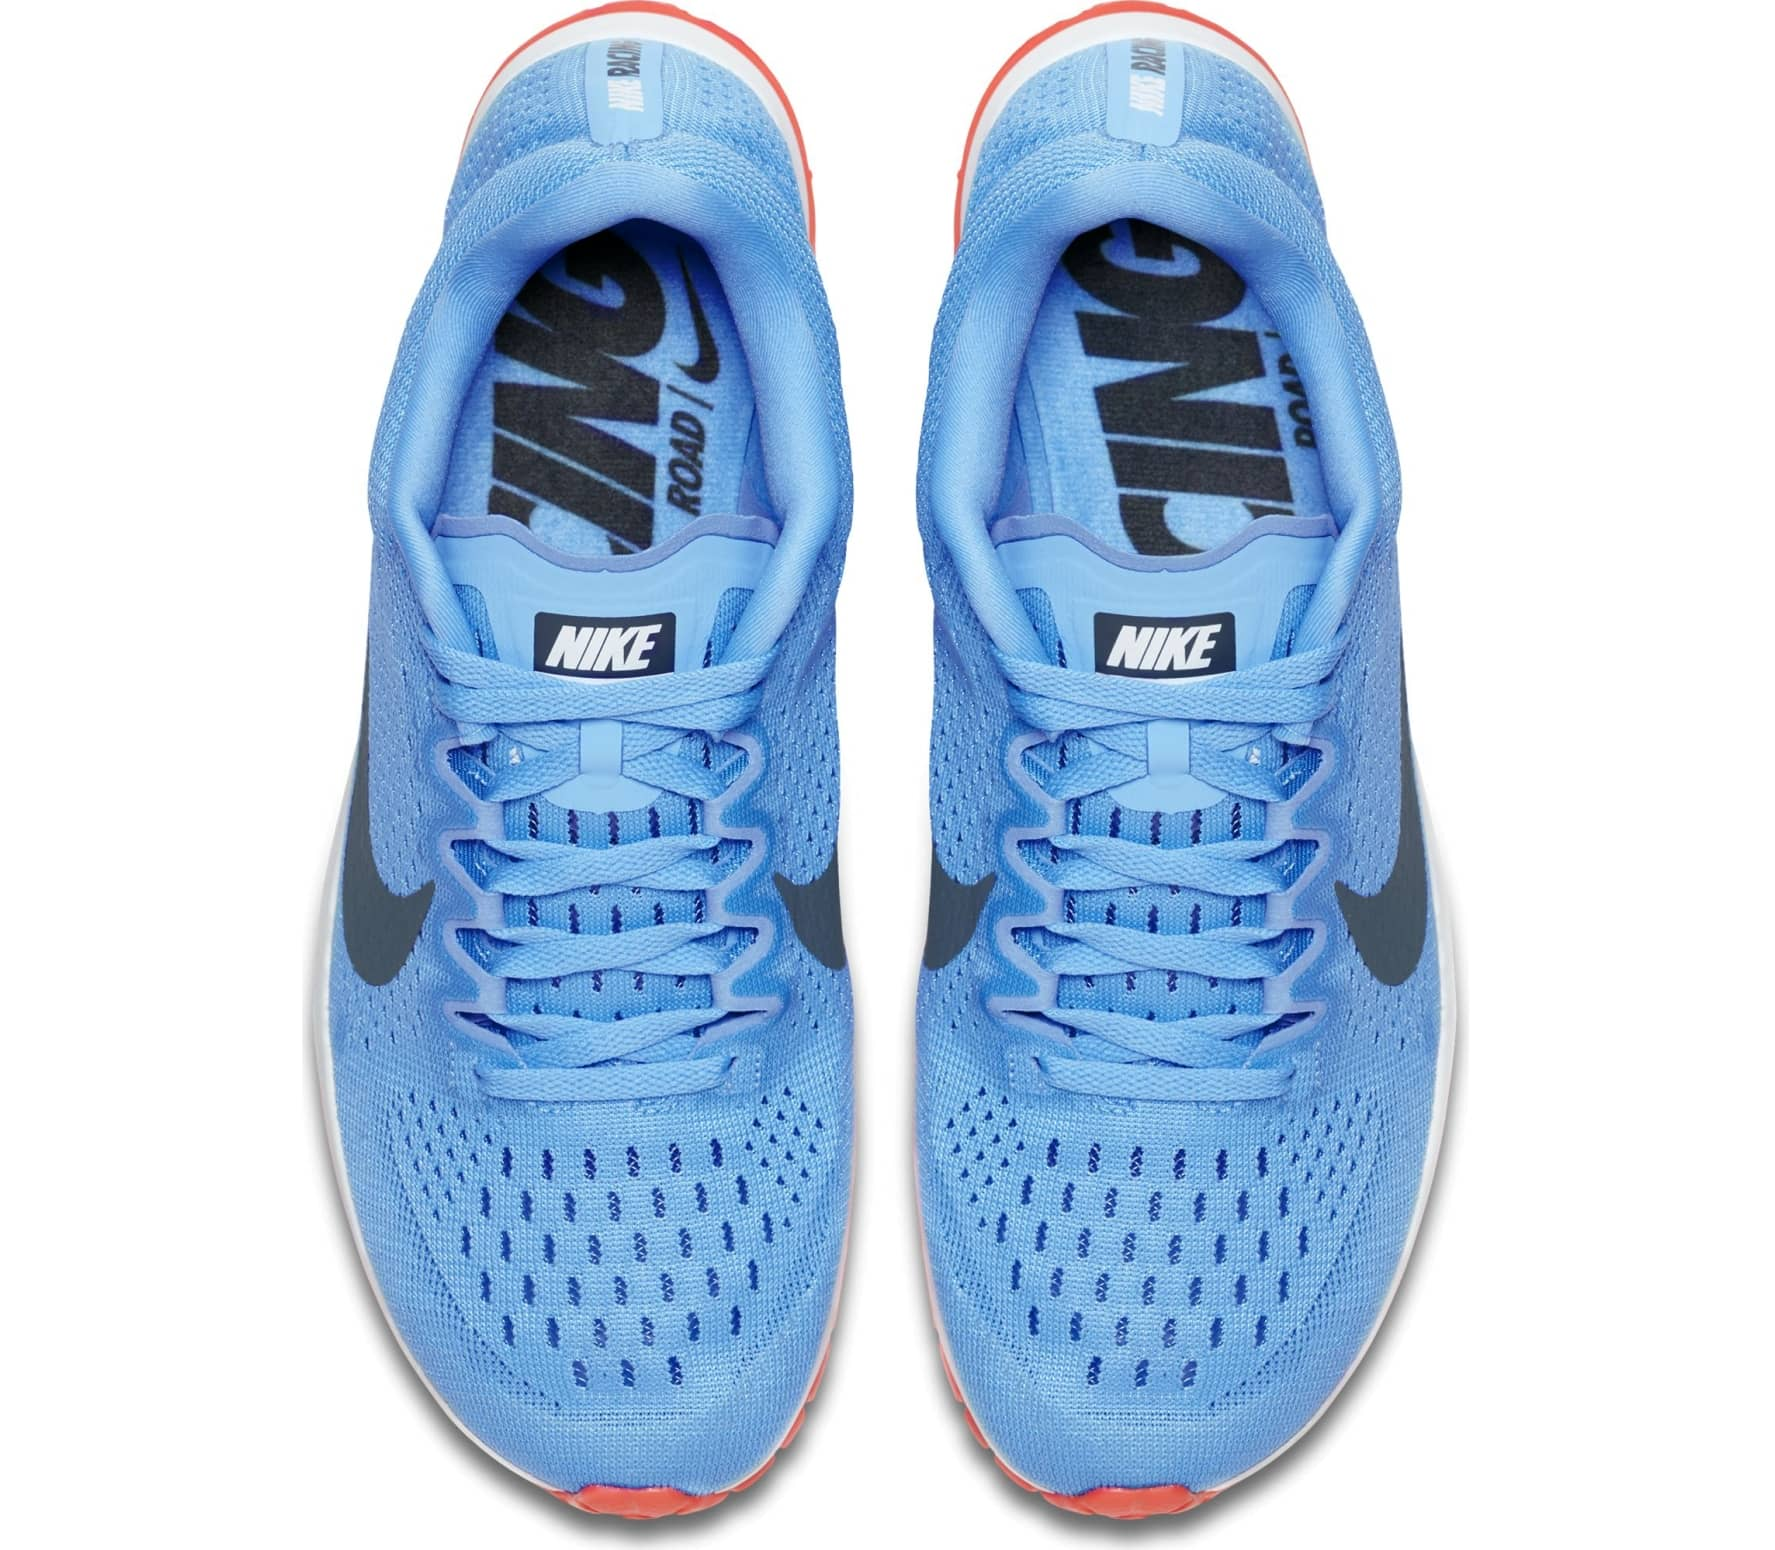 Womens Nike Zoom Streak Running Shoes | The Centre for